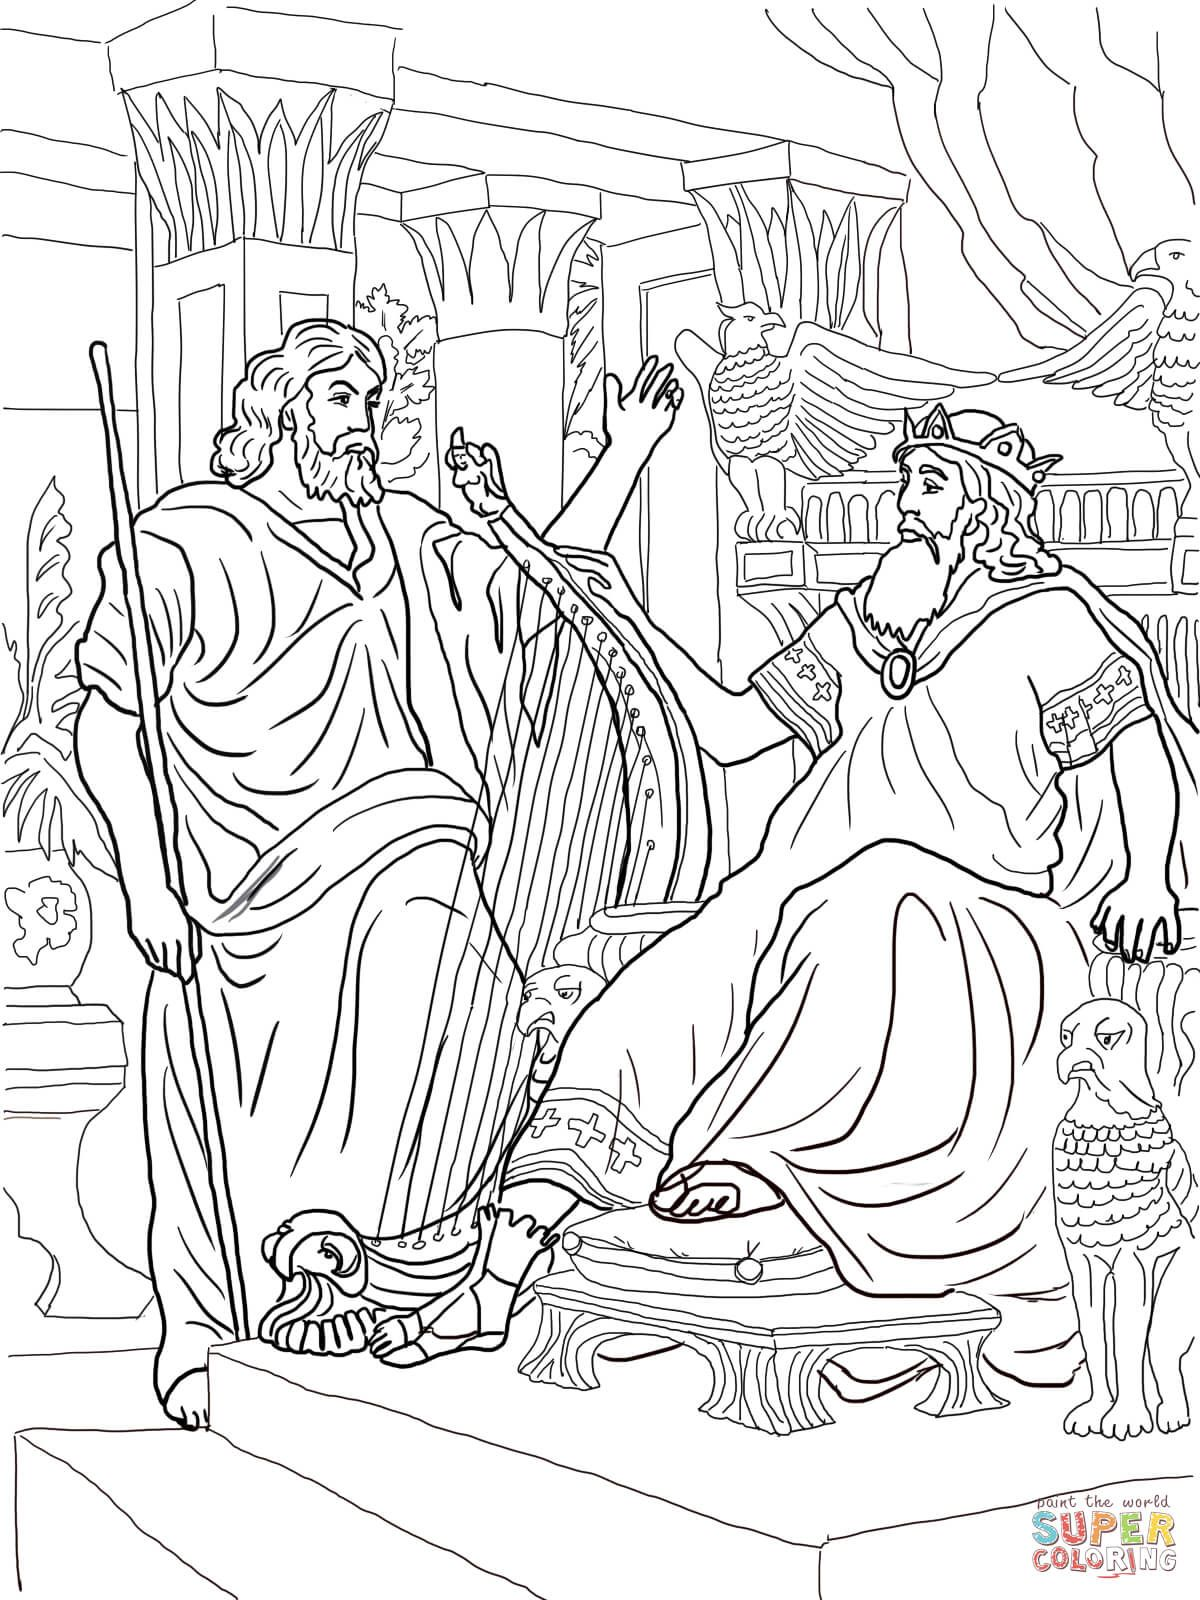 King David And Nathan Super Coloring Coloring Pages Bible